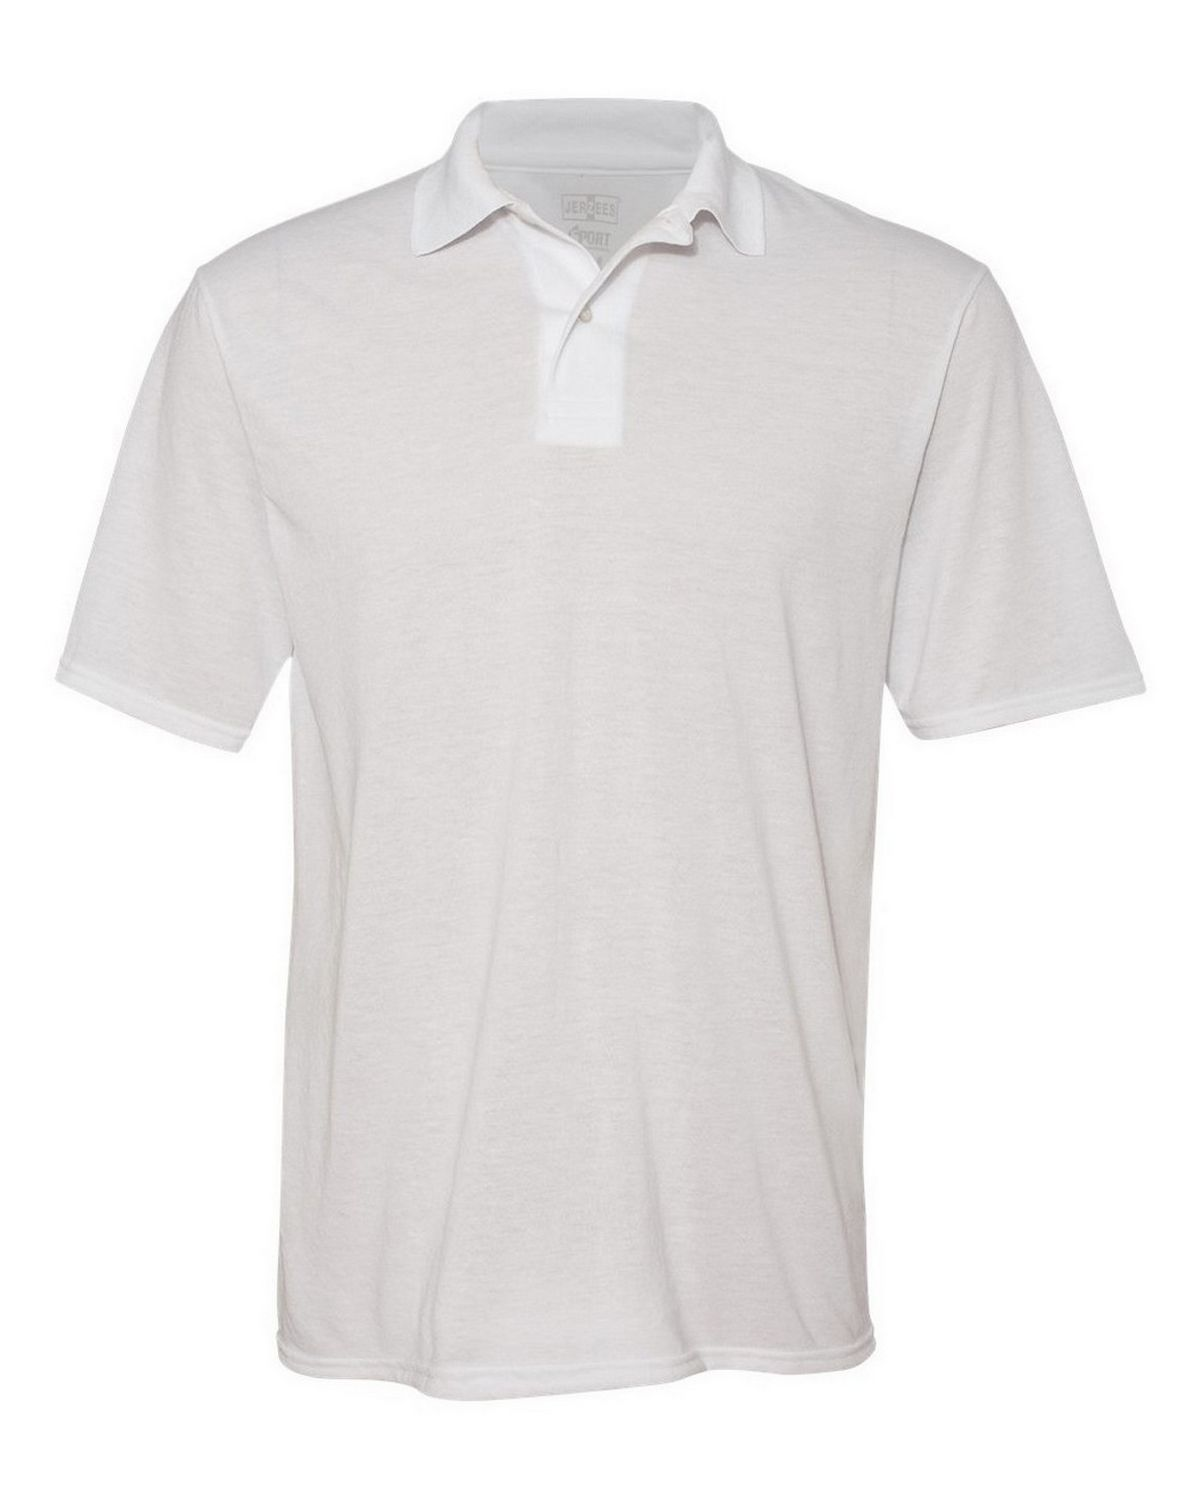 Jerzees 421 Sport Polo - White - L 421